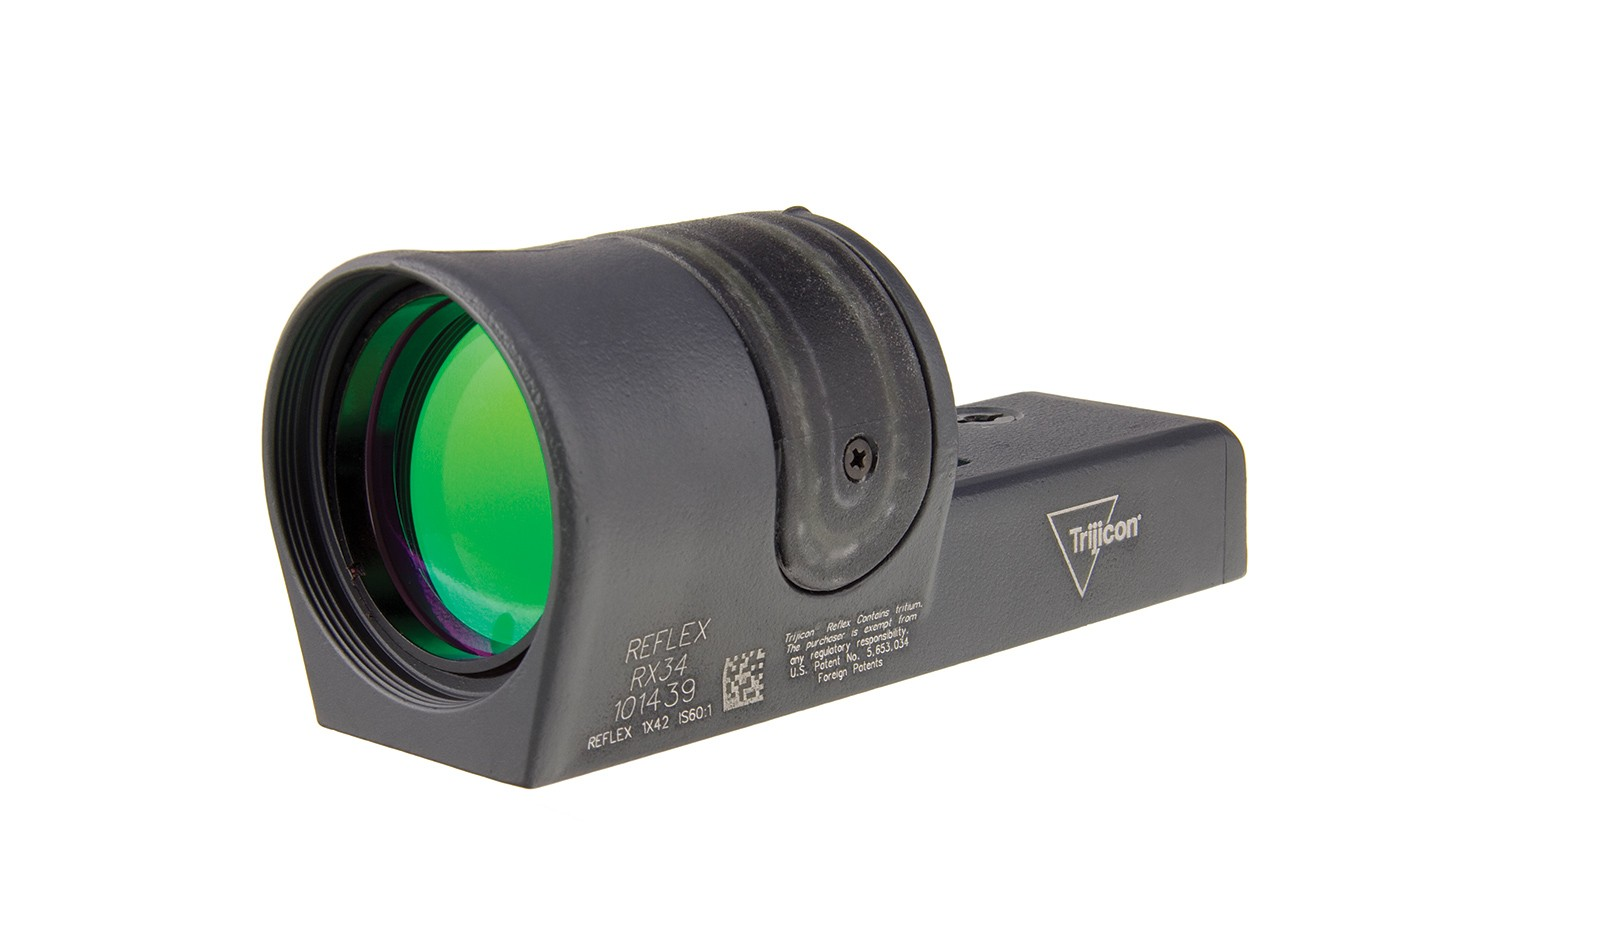 Trijicon® Reflex 1x42 Dual Illuminated Sight - Sniper Gray